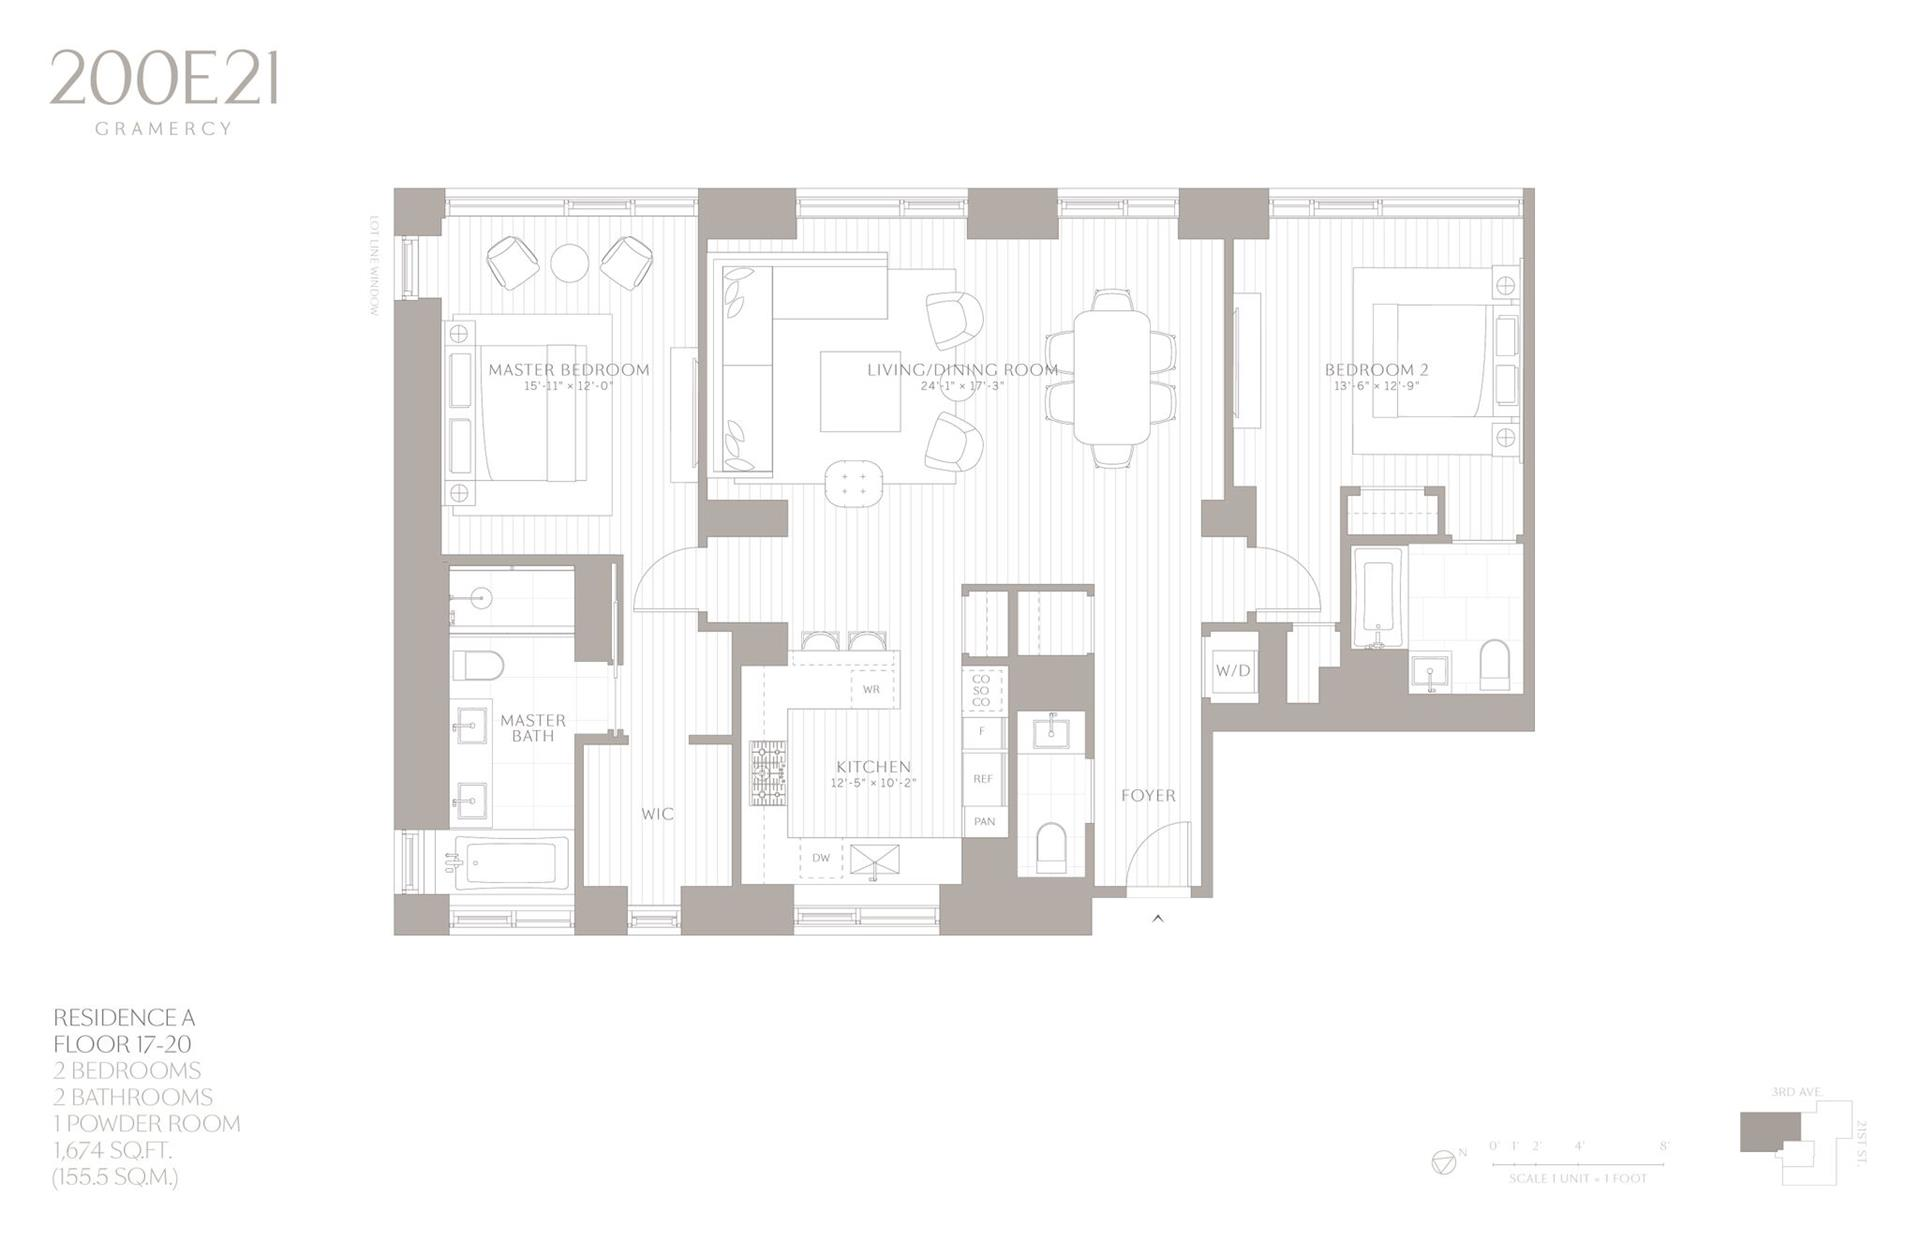 Floor plan of 200 East 21st Street, 17A - Gramercy - Union Square, New York